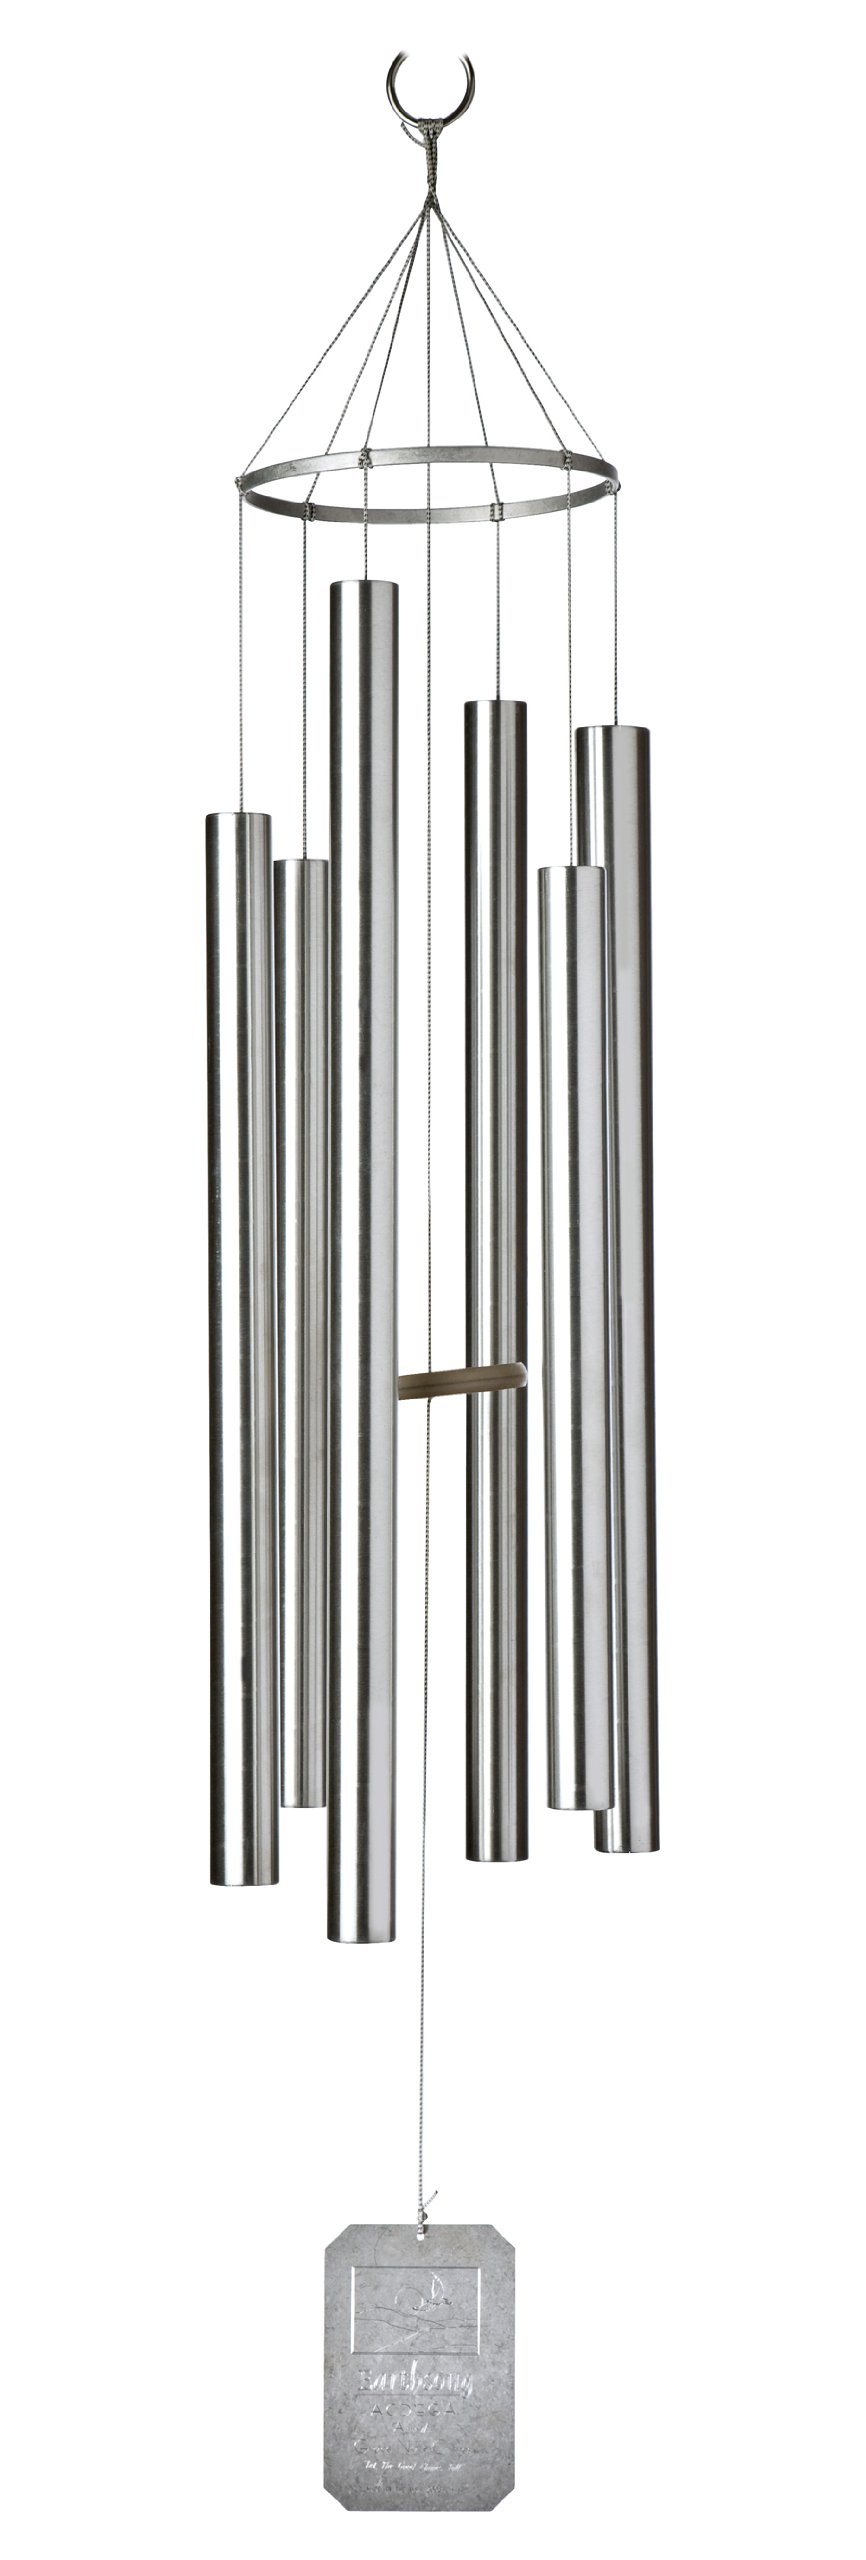 Grace Note Chimes LAUT Large Autumn Seasonal Harmonizing Wind Chimes, 56-Inch, Silver